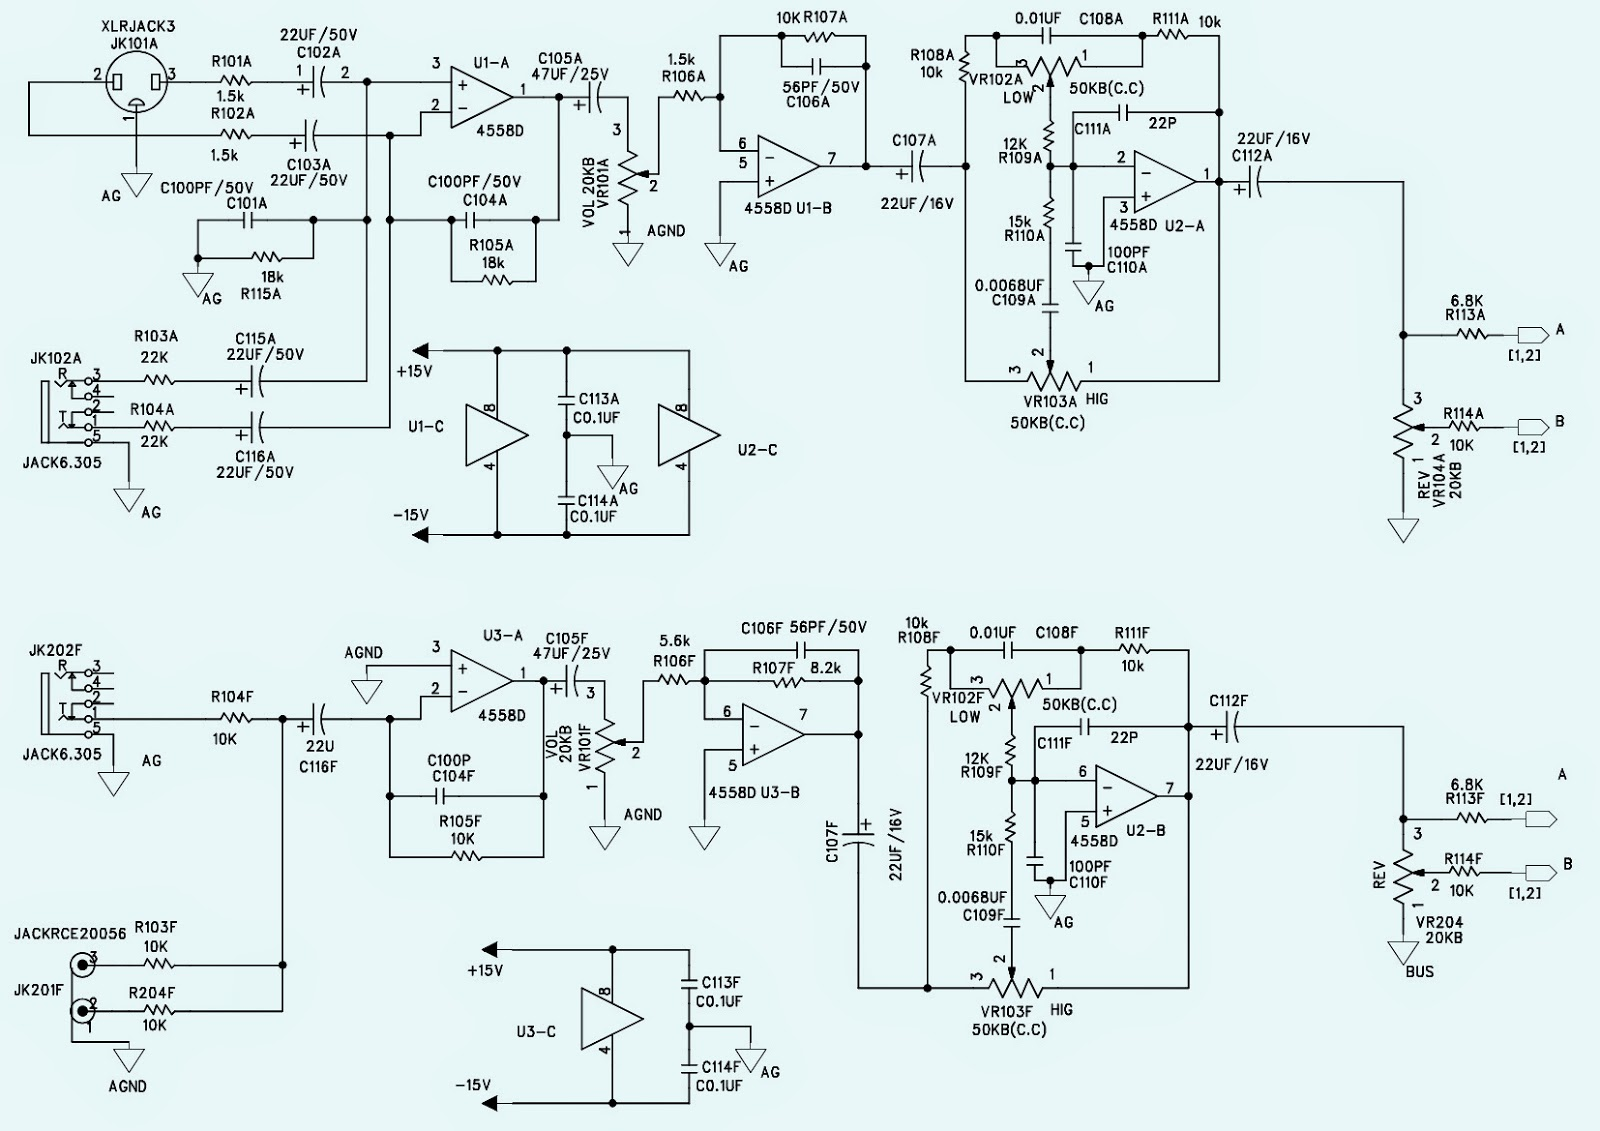 wharfedale pro pm 600 schematic professional audio mixer 230w x rh electronicshelponline blogspot com Schematic Wiring Diagram Schematic Circuit Diagram